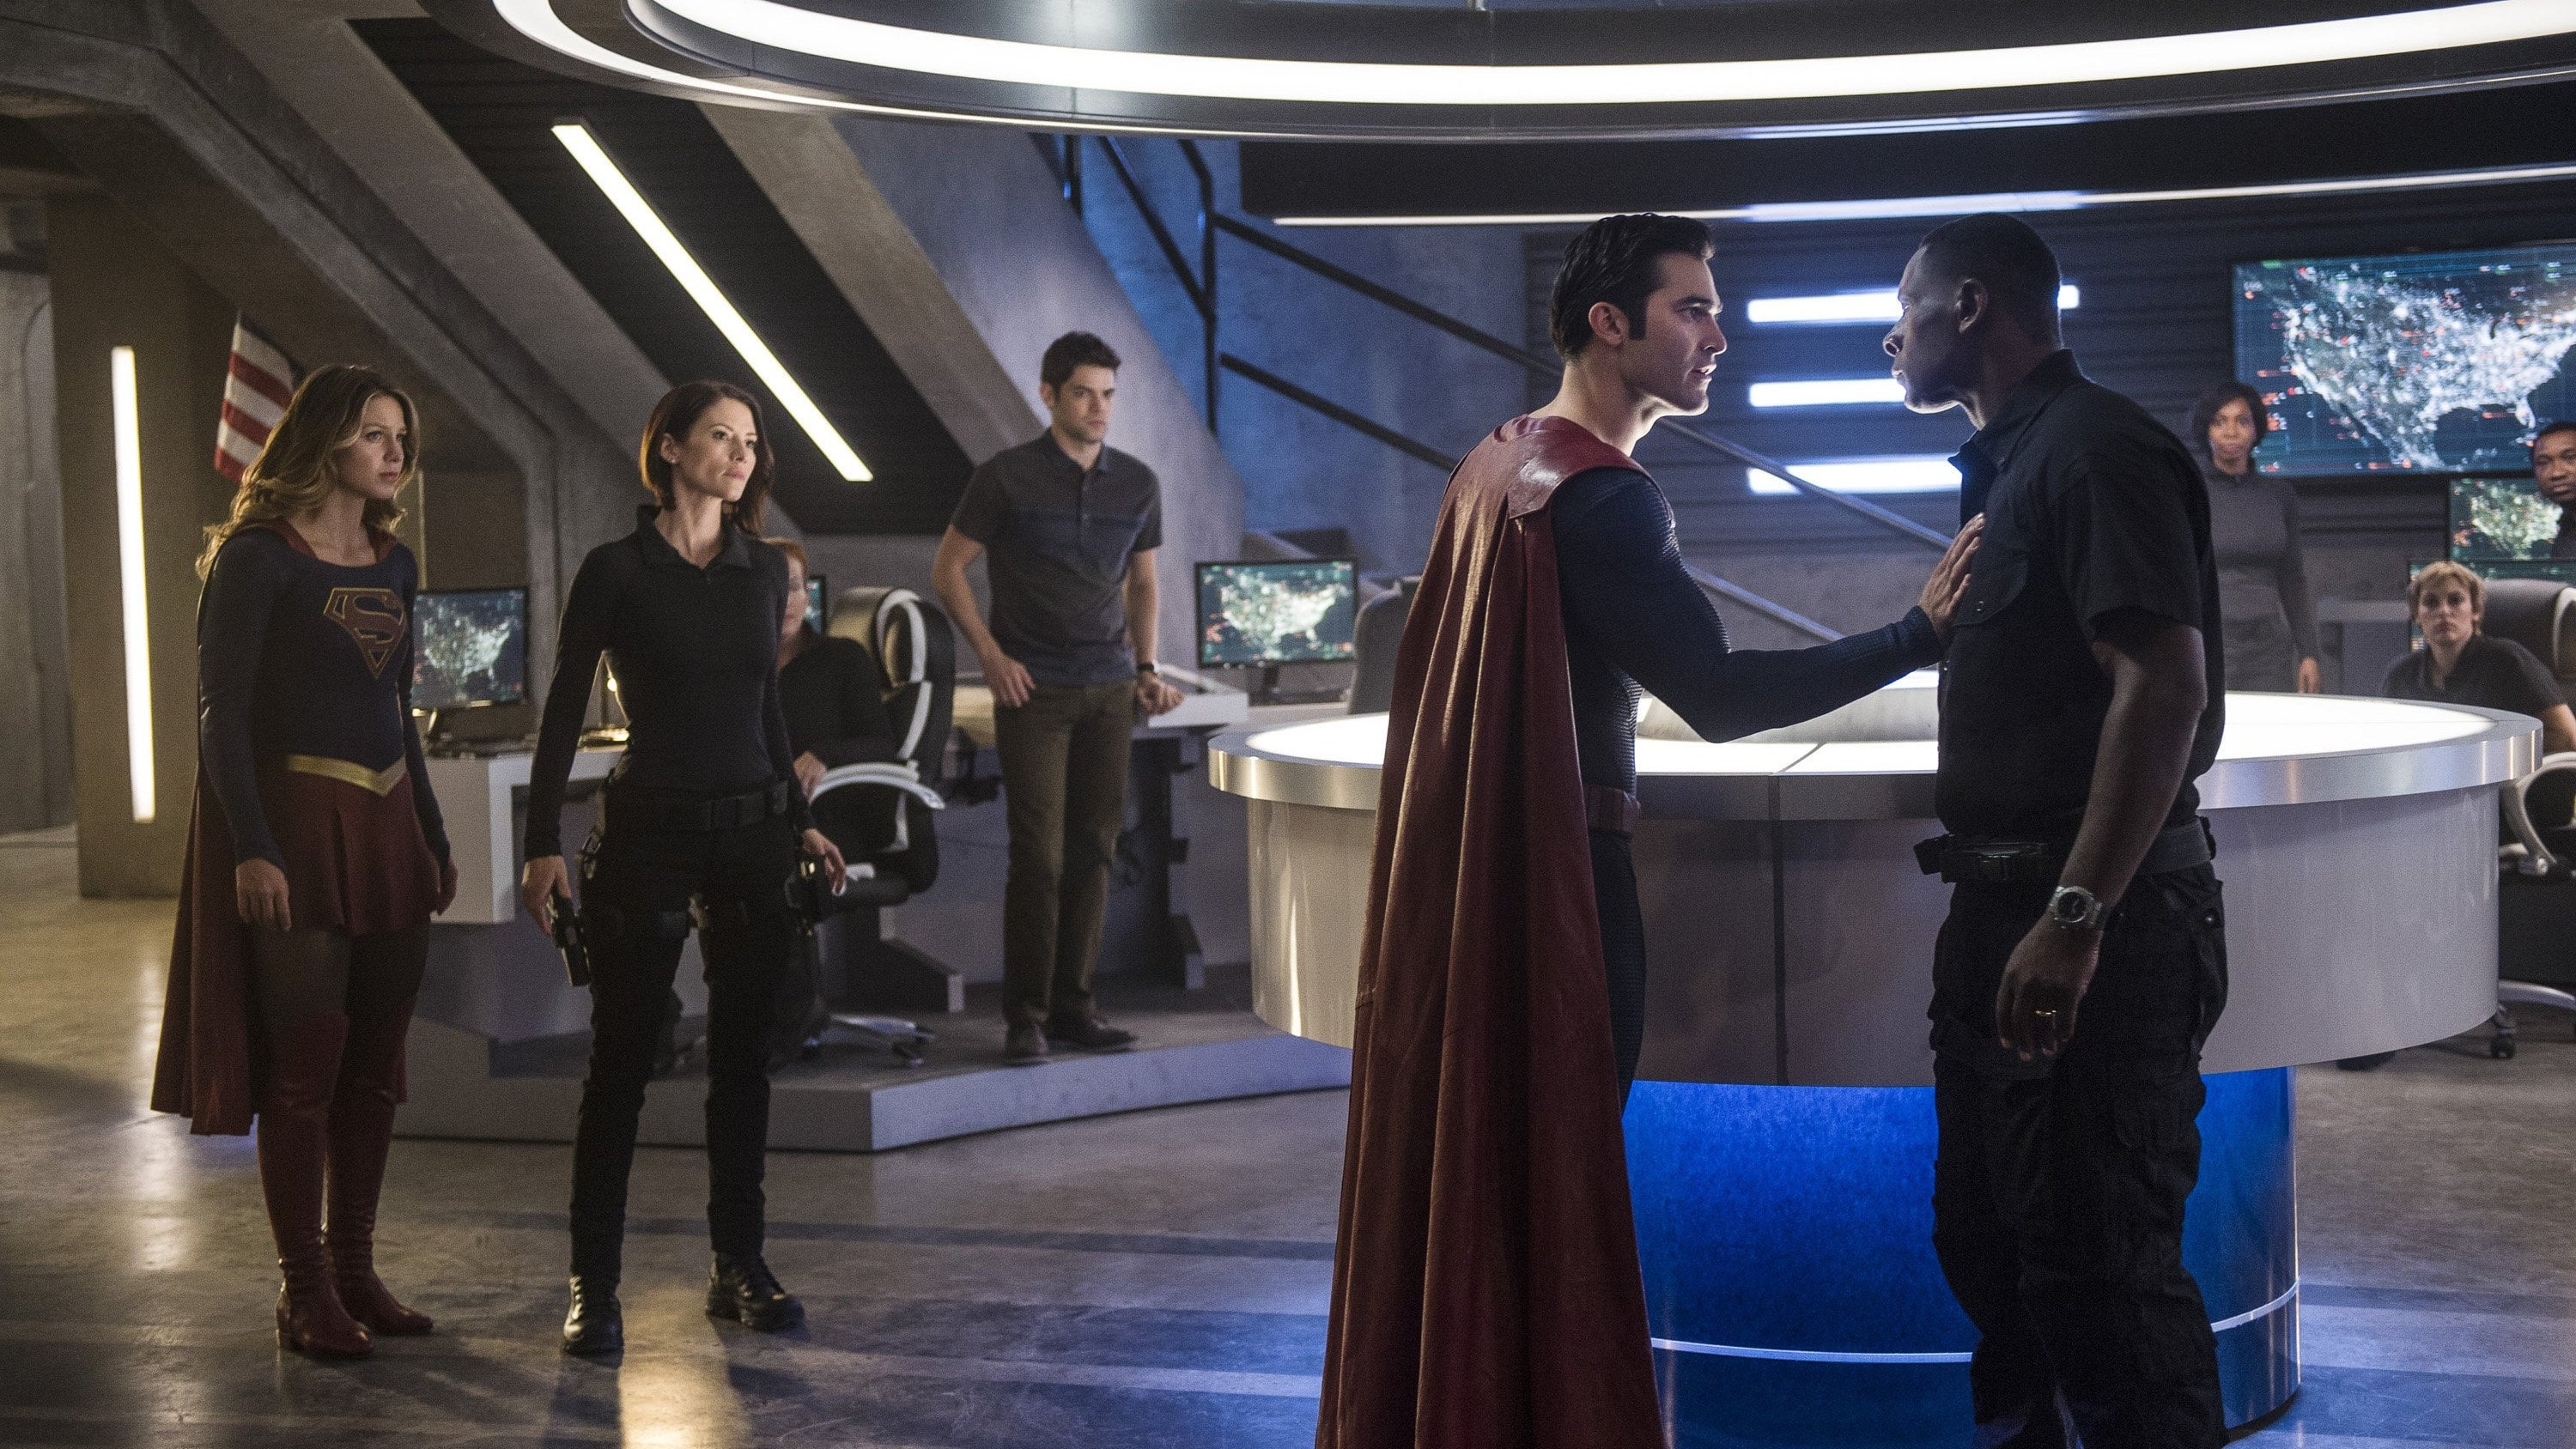 Supergirl - Season 2 Episode 2 : The Last Children of Krypton